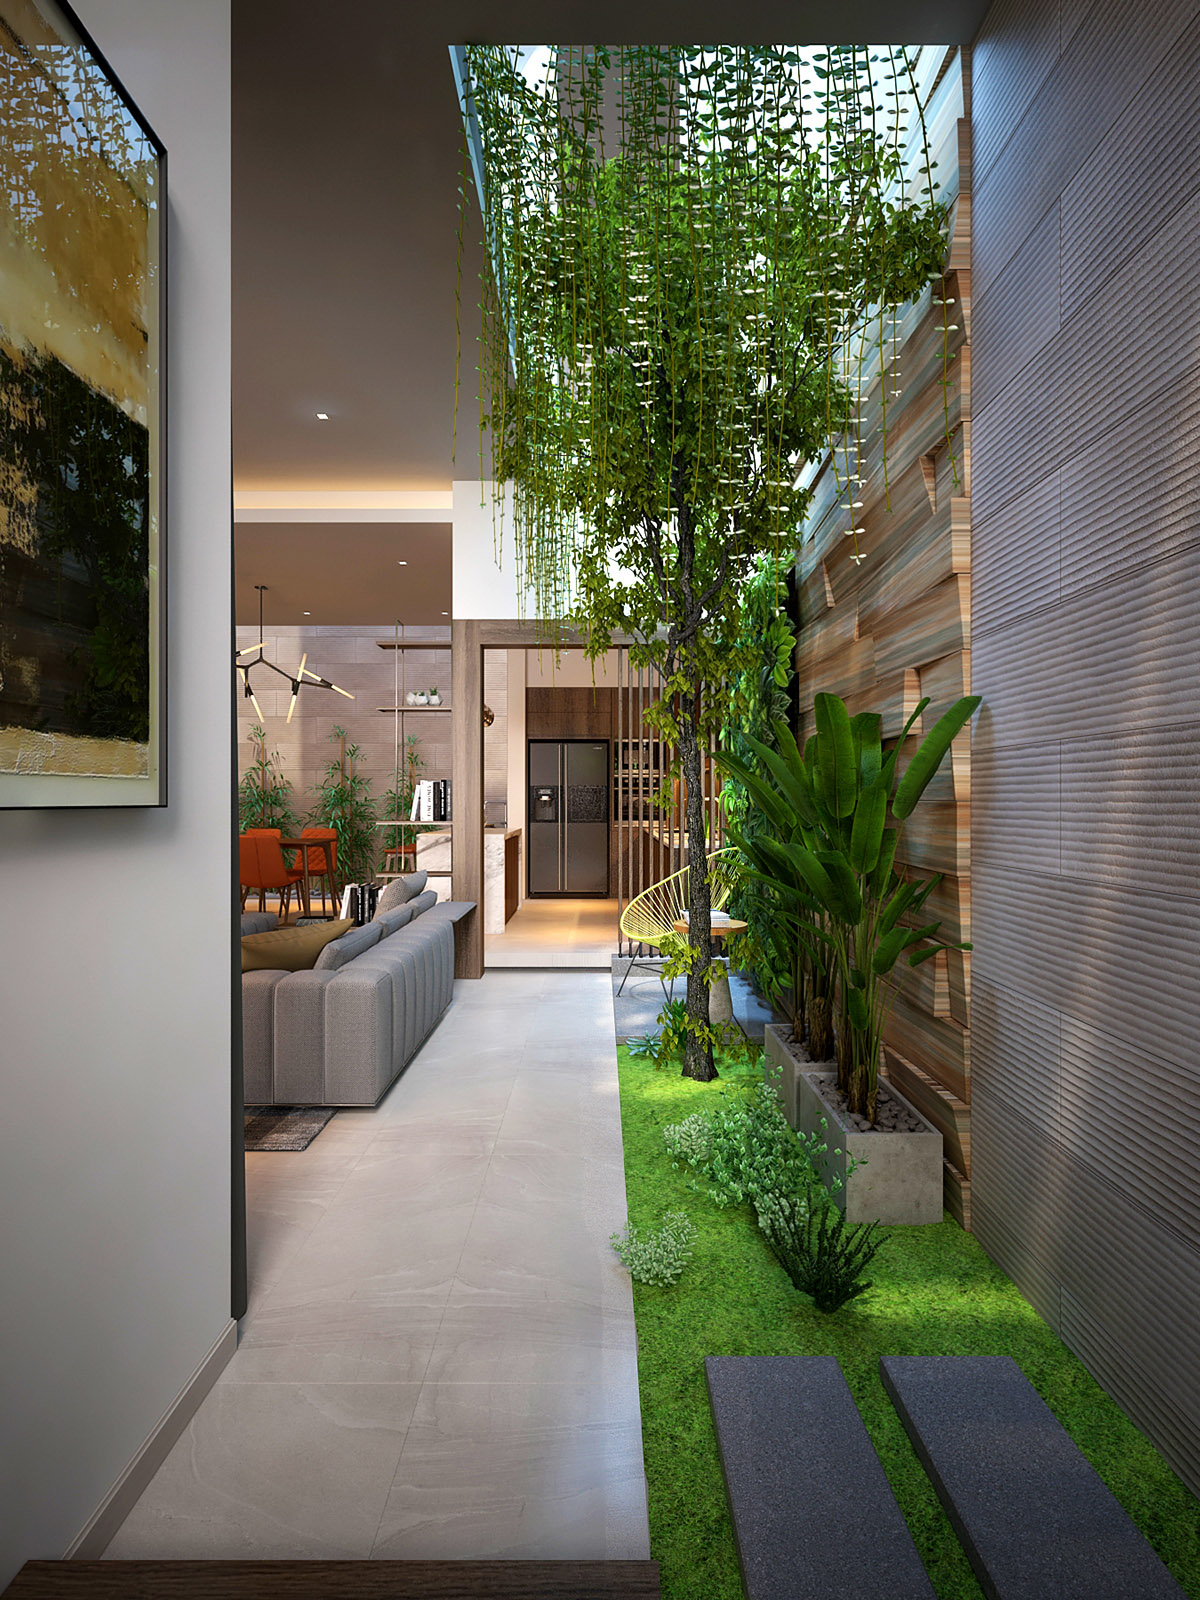 4 Homes That Feature Green Spaces Inside, With Courtyards ... on Garden Living Space id=18598